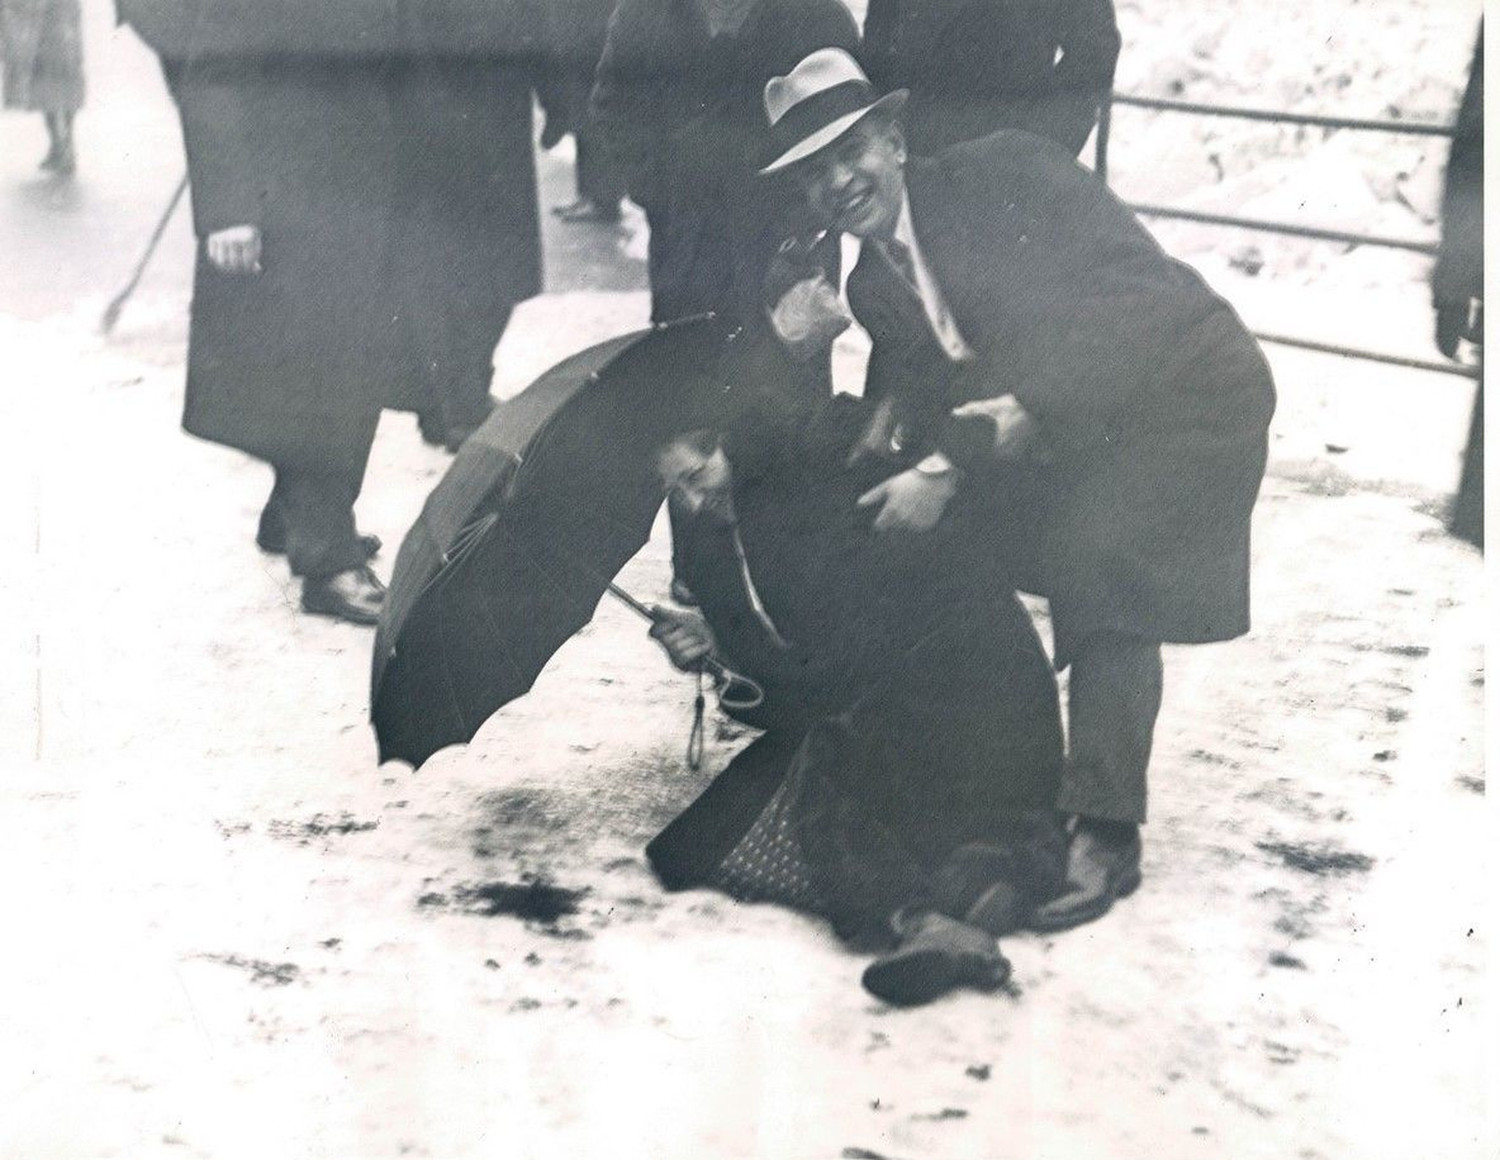 February 4 1936 Pedestrians help one another on slippery snowy sidewalks in New York photo Acme